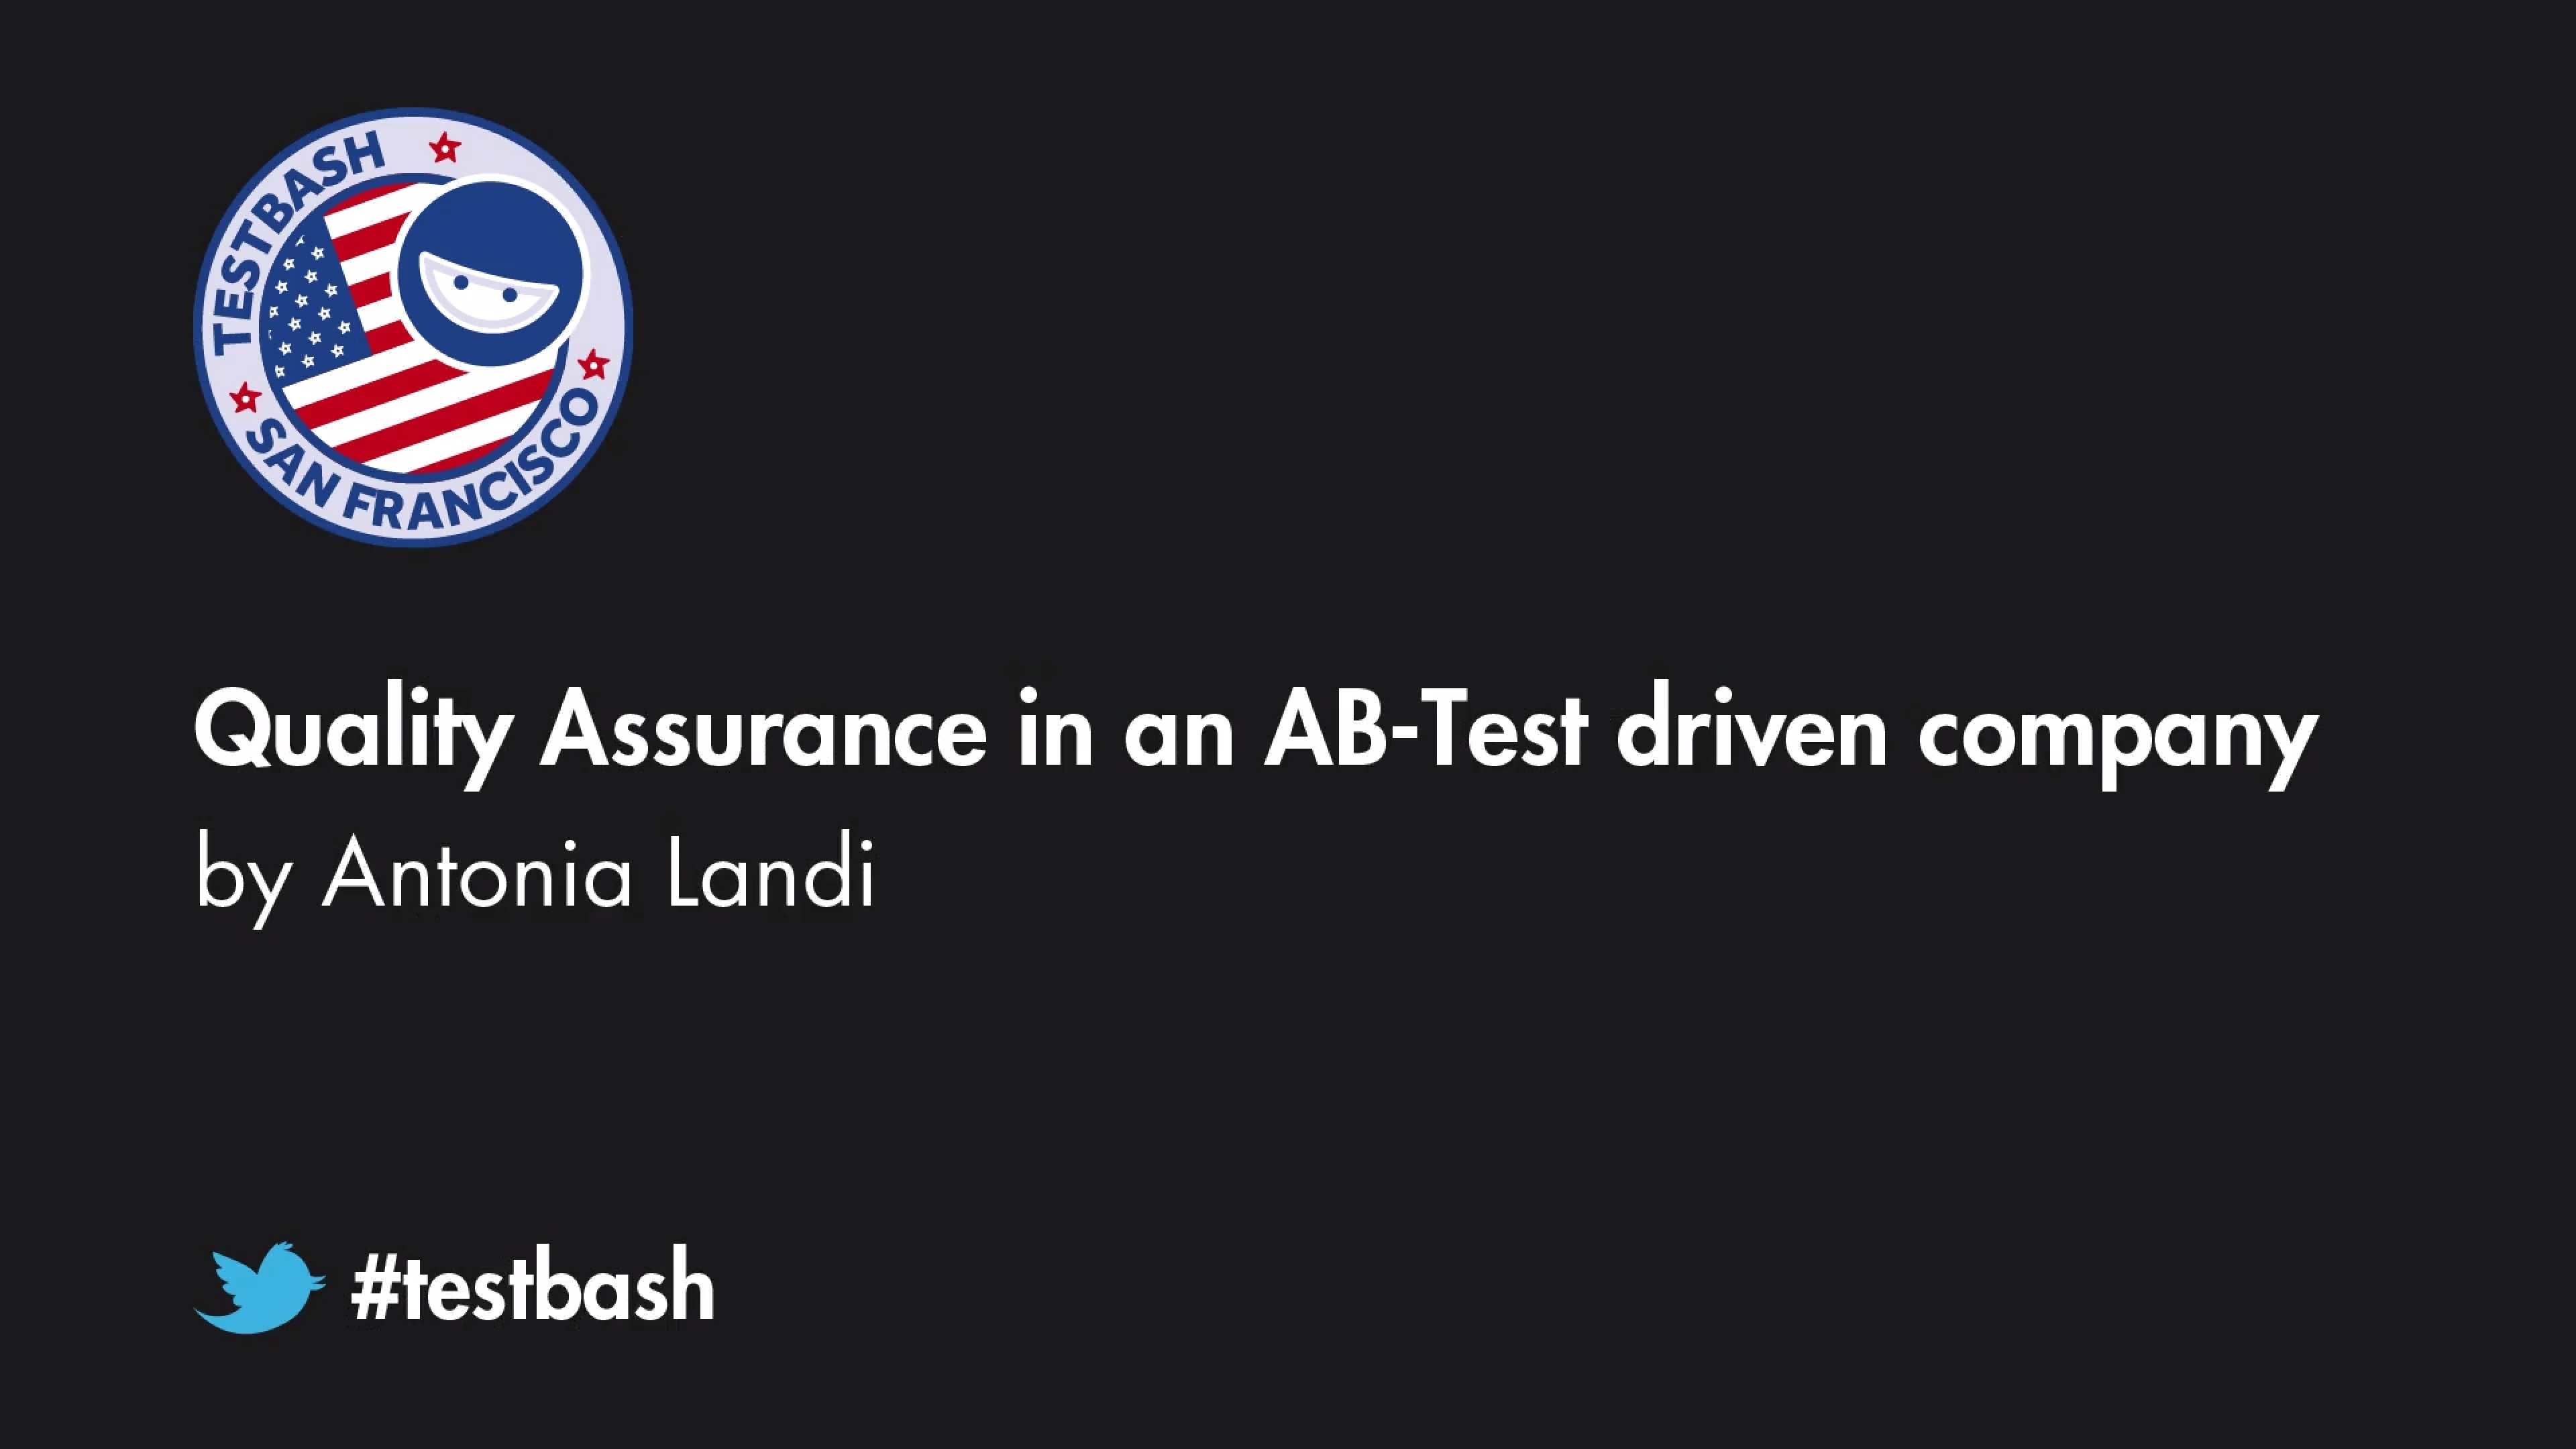 Quality Assurance in an AB-Test Driven Company - Antonia Landi